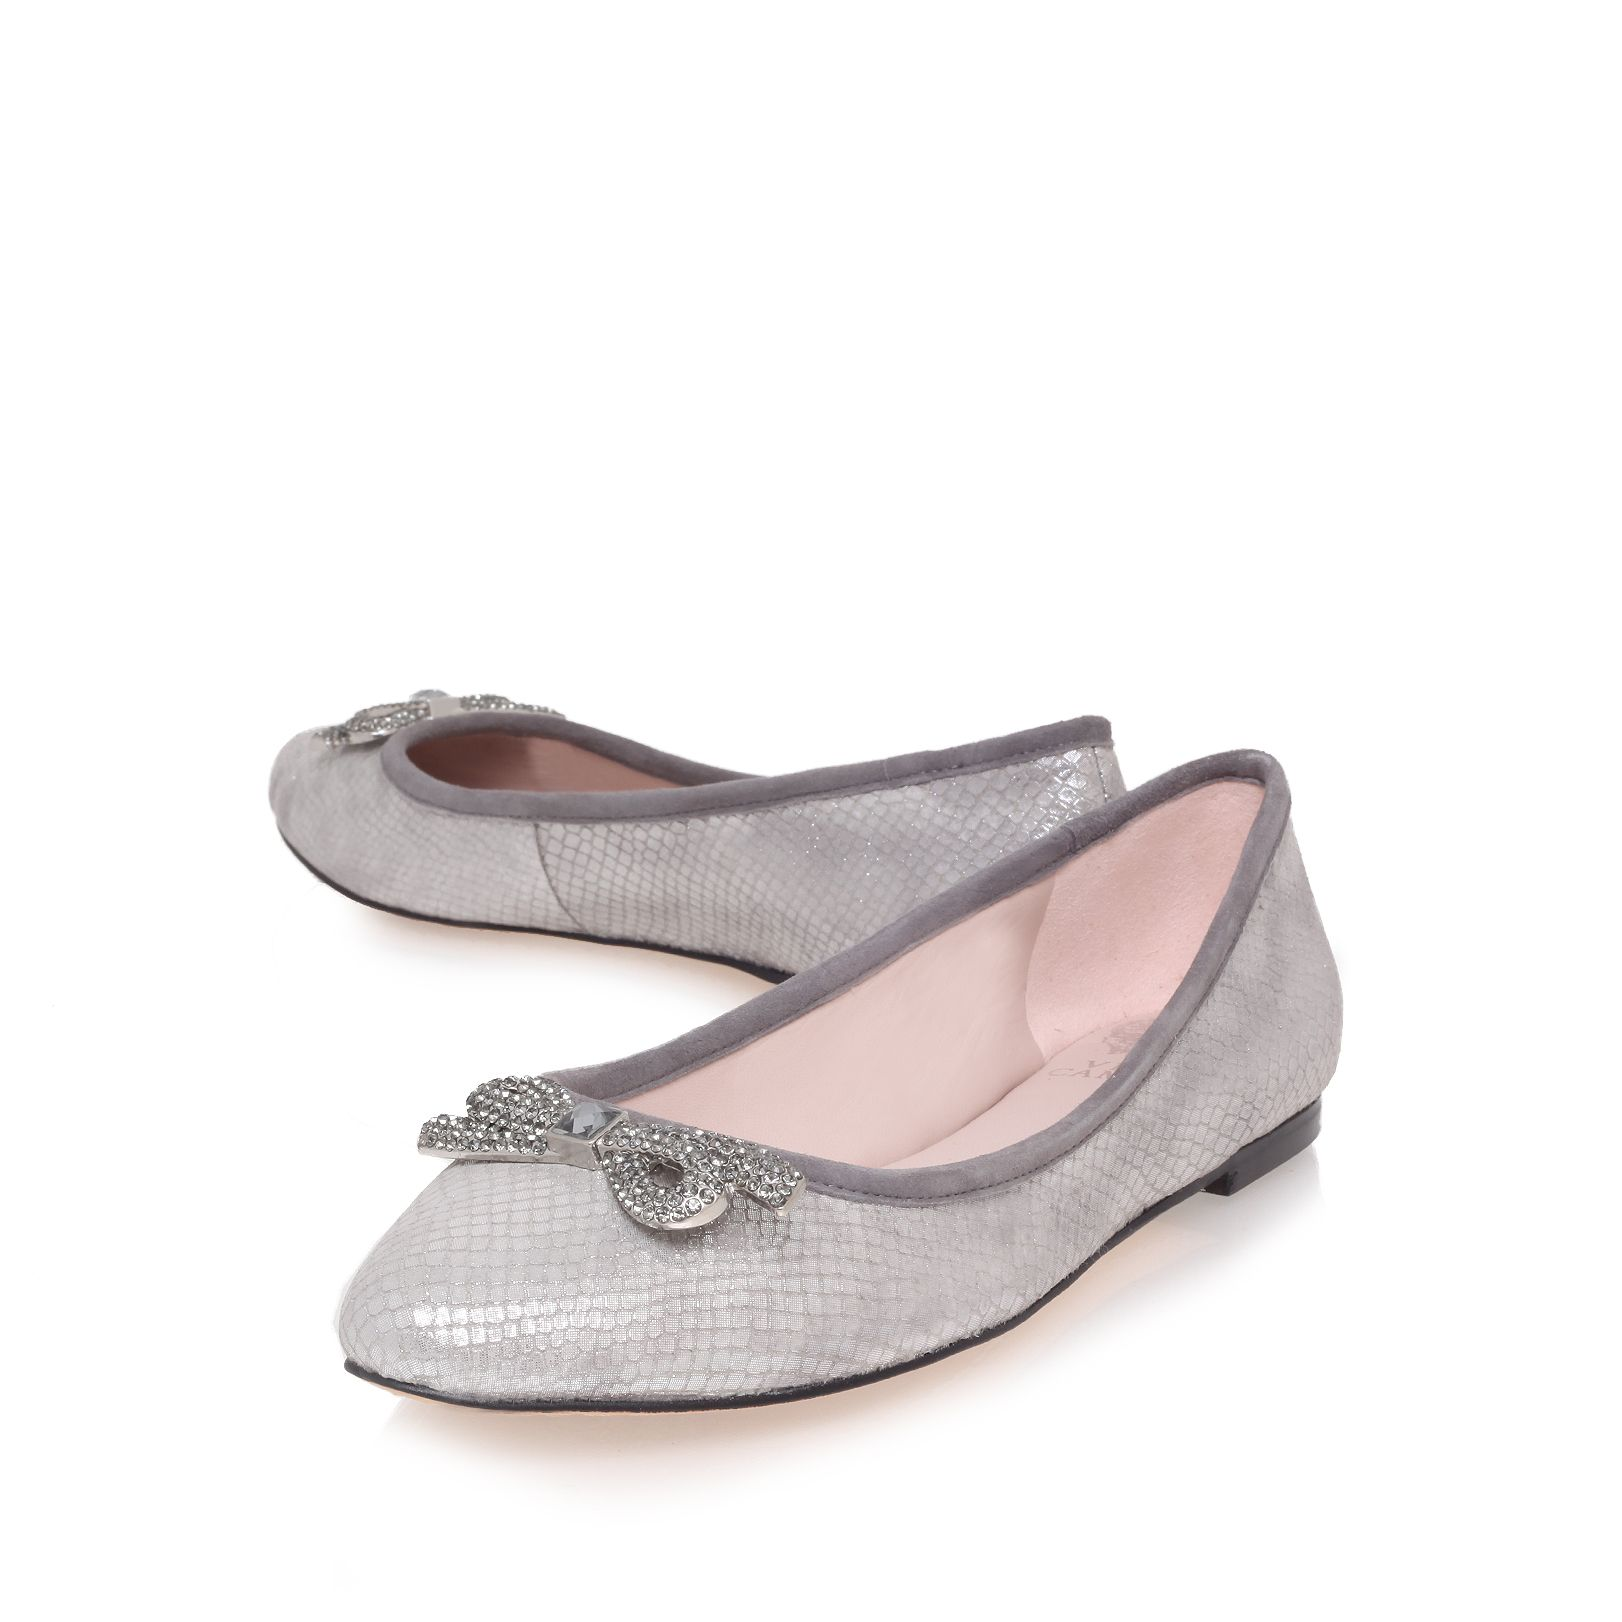 Tanyah flat ballerina shoes